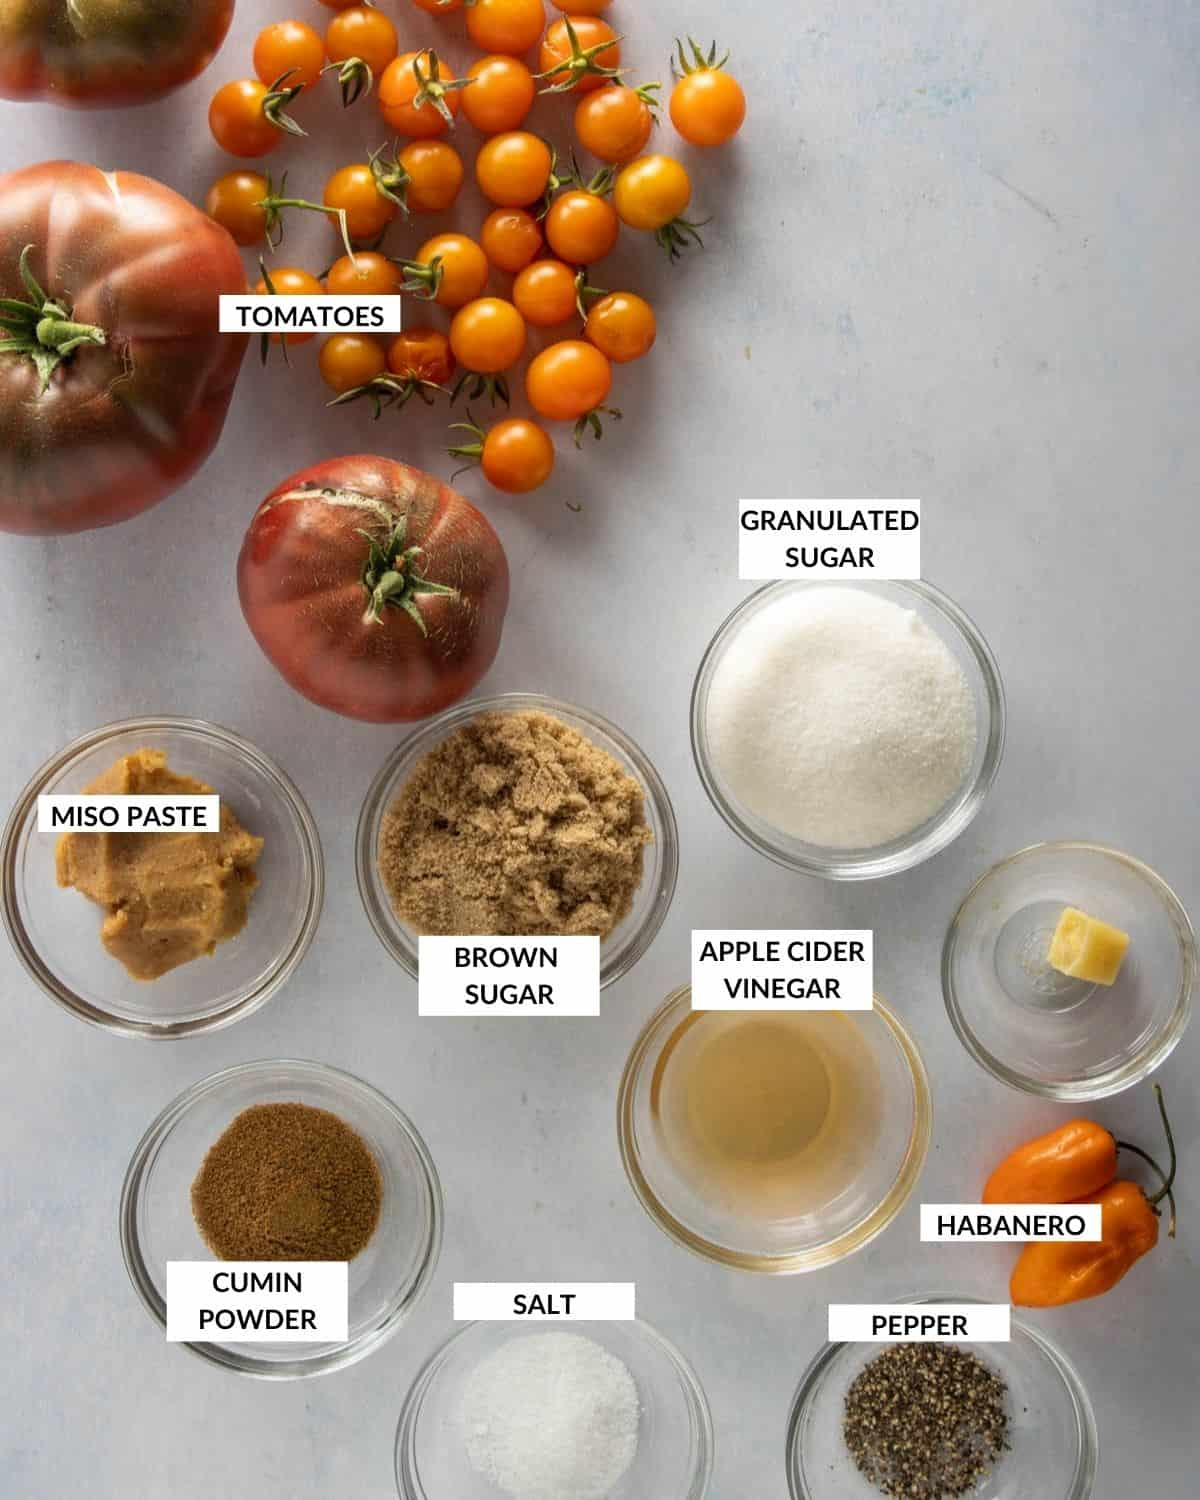 Labeled ingredient list for making tomato jam - check recipe card for details!